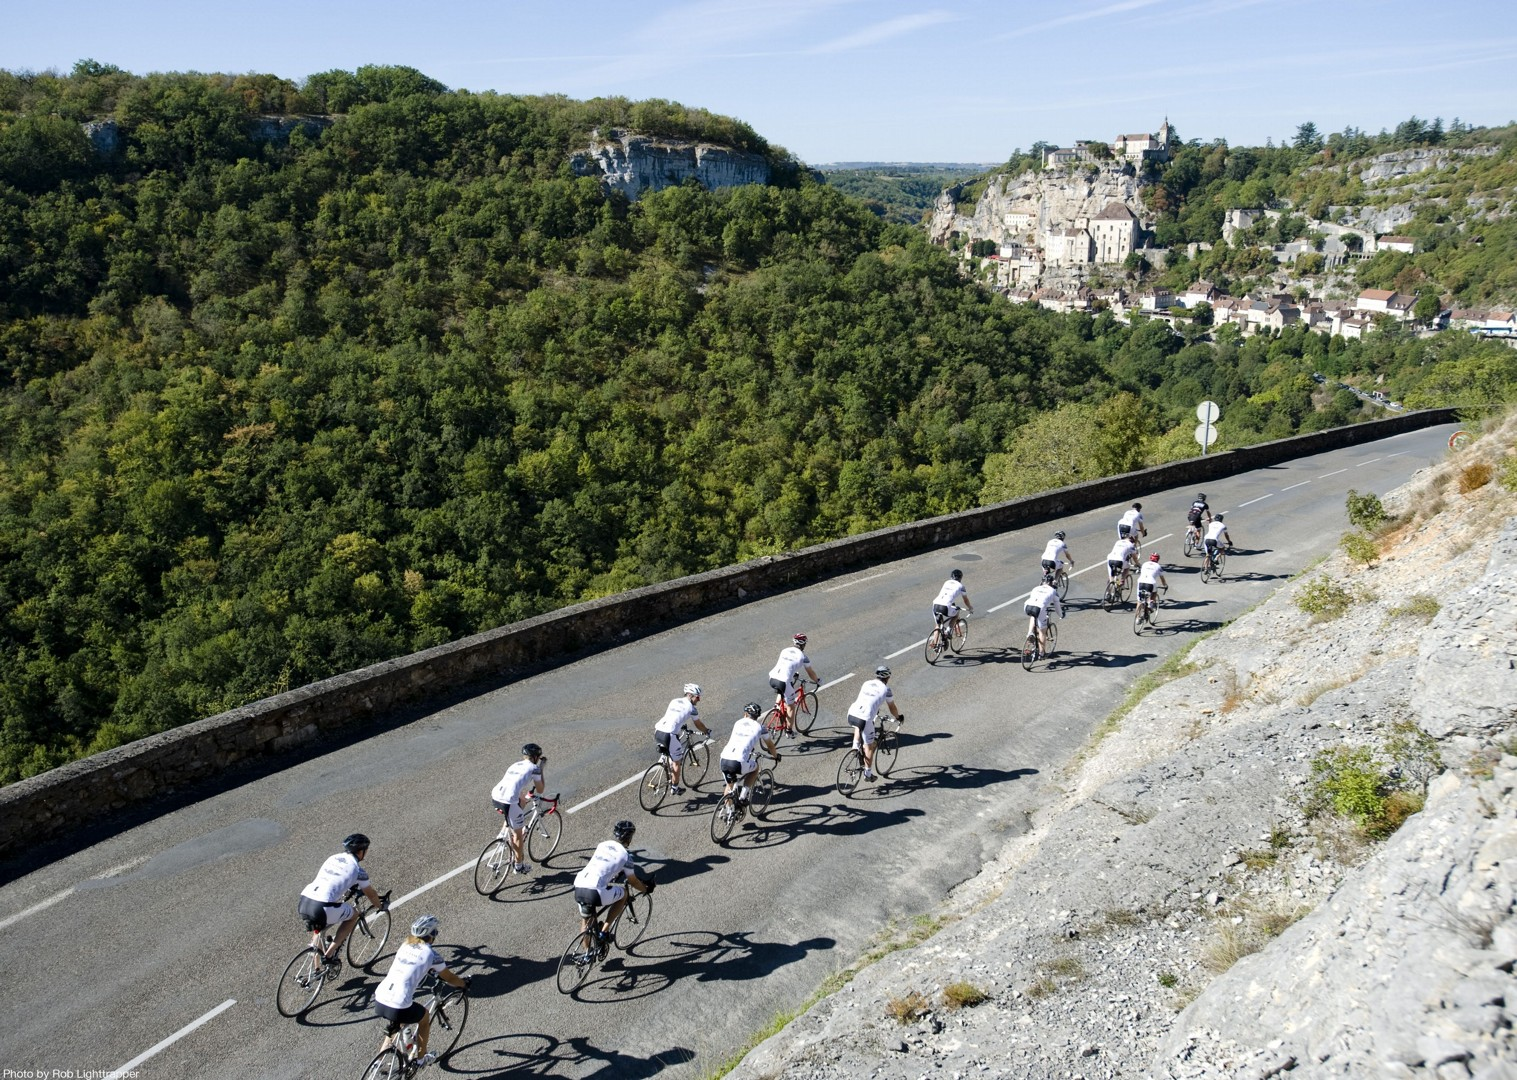 st-malo-to-nice-classic-road-cycling-holiday.jpg - France - St Malo to Nice Classic (15 days) - Guided Road Cycling Holiday - Road Cycling